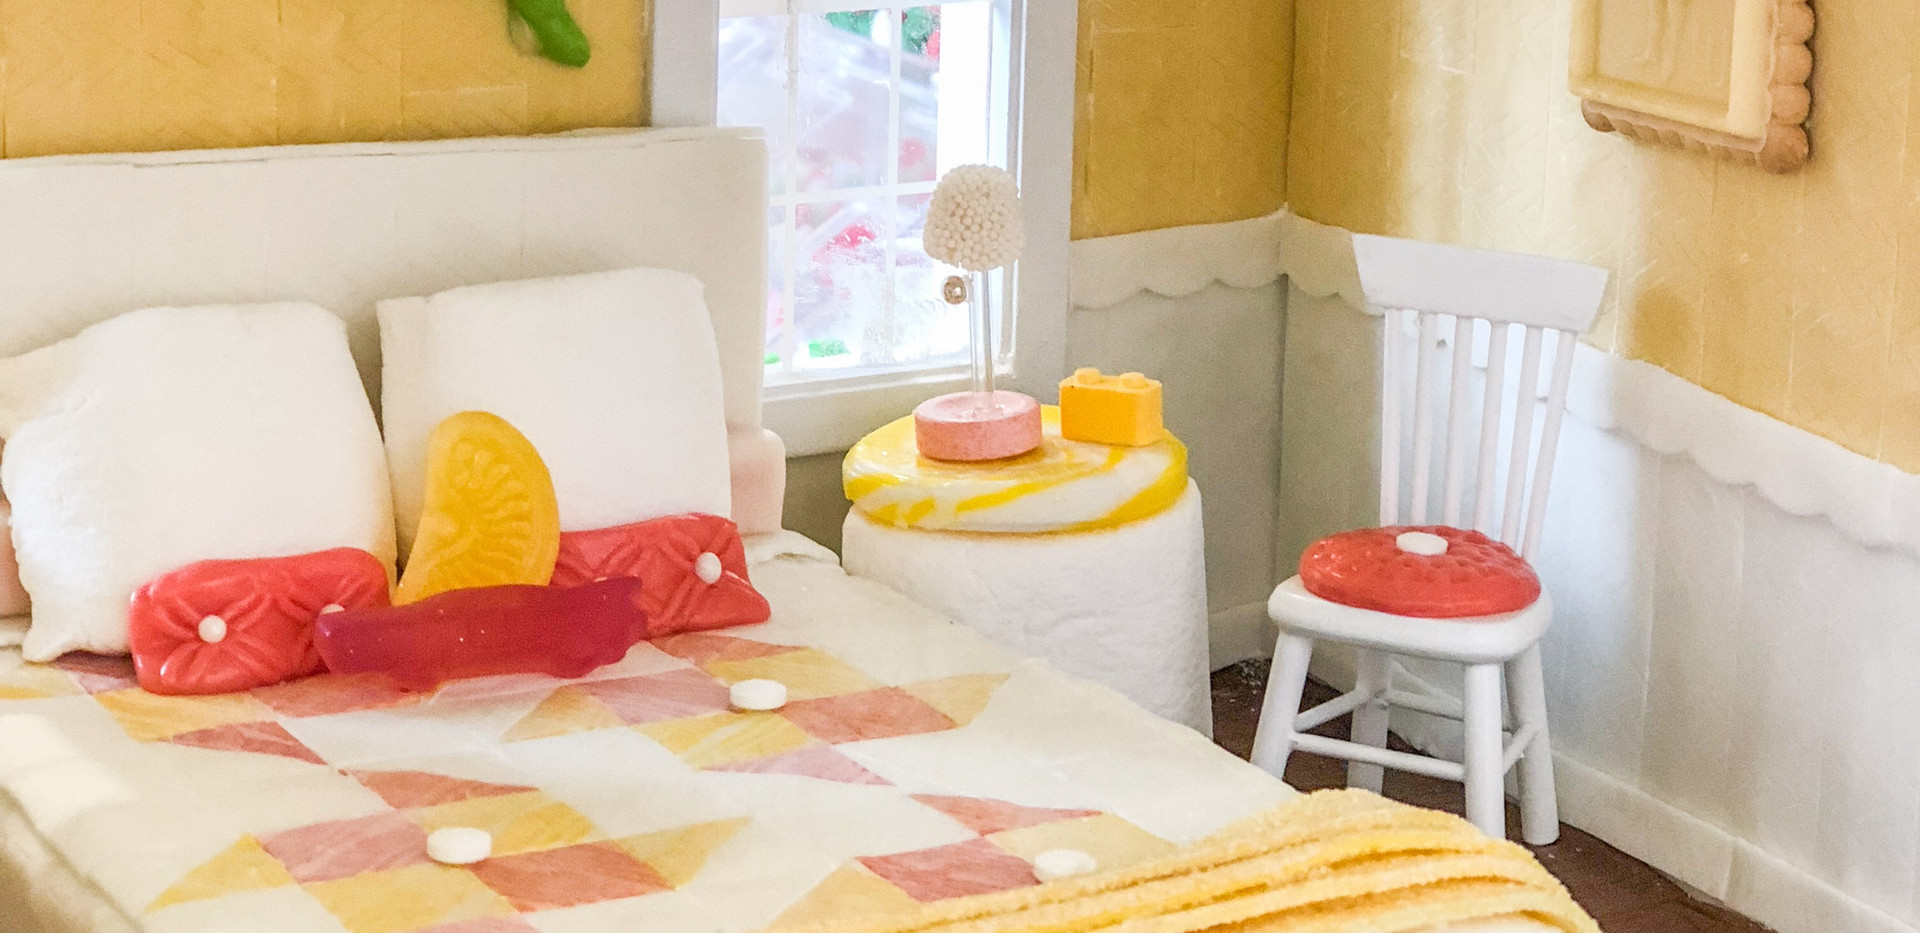 Gum Quilt, Cookie Art, Marshmallow Pillows and Side Table